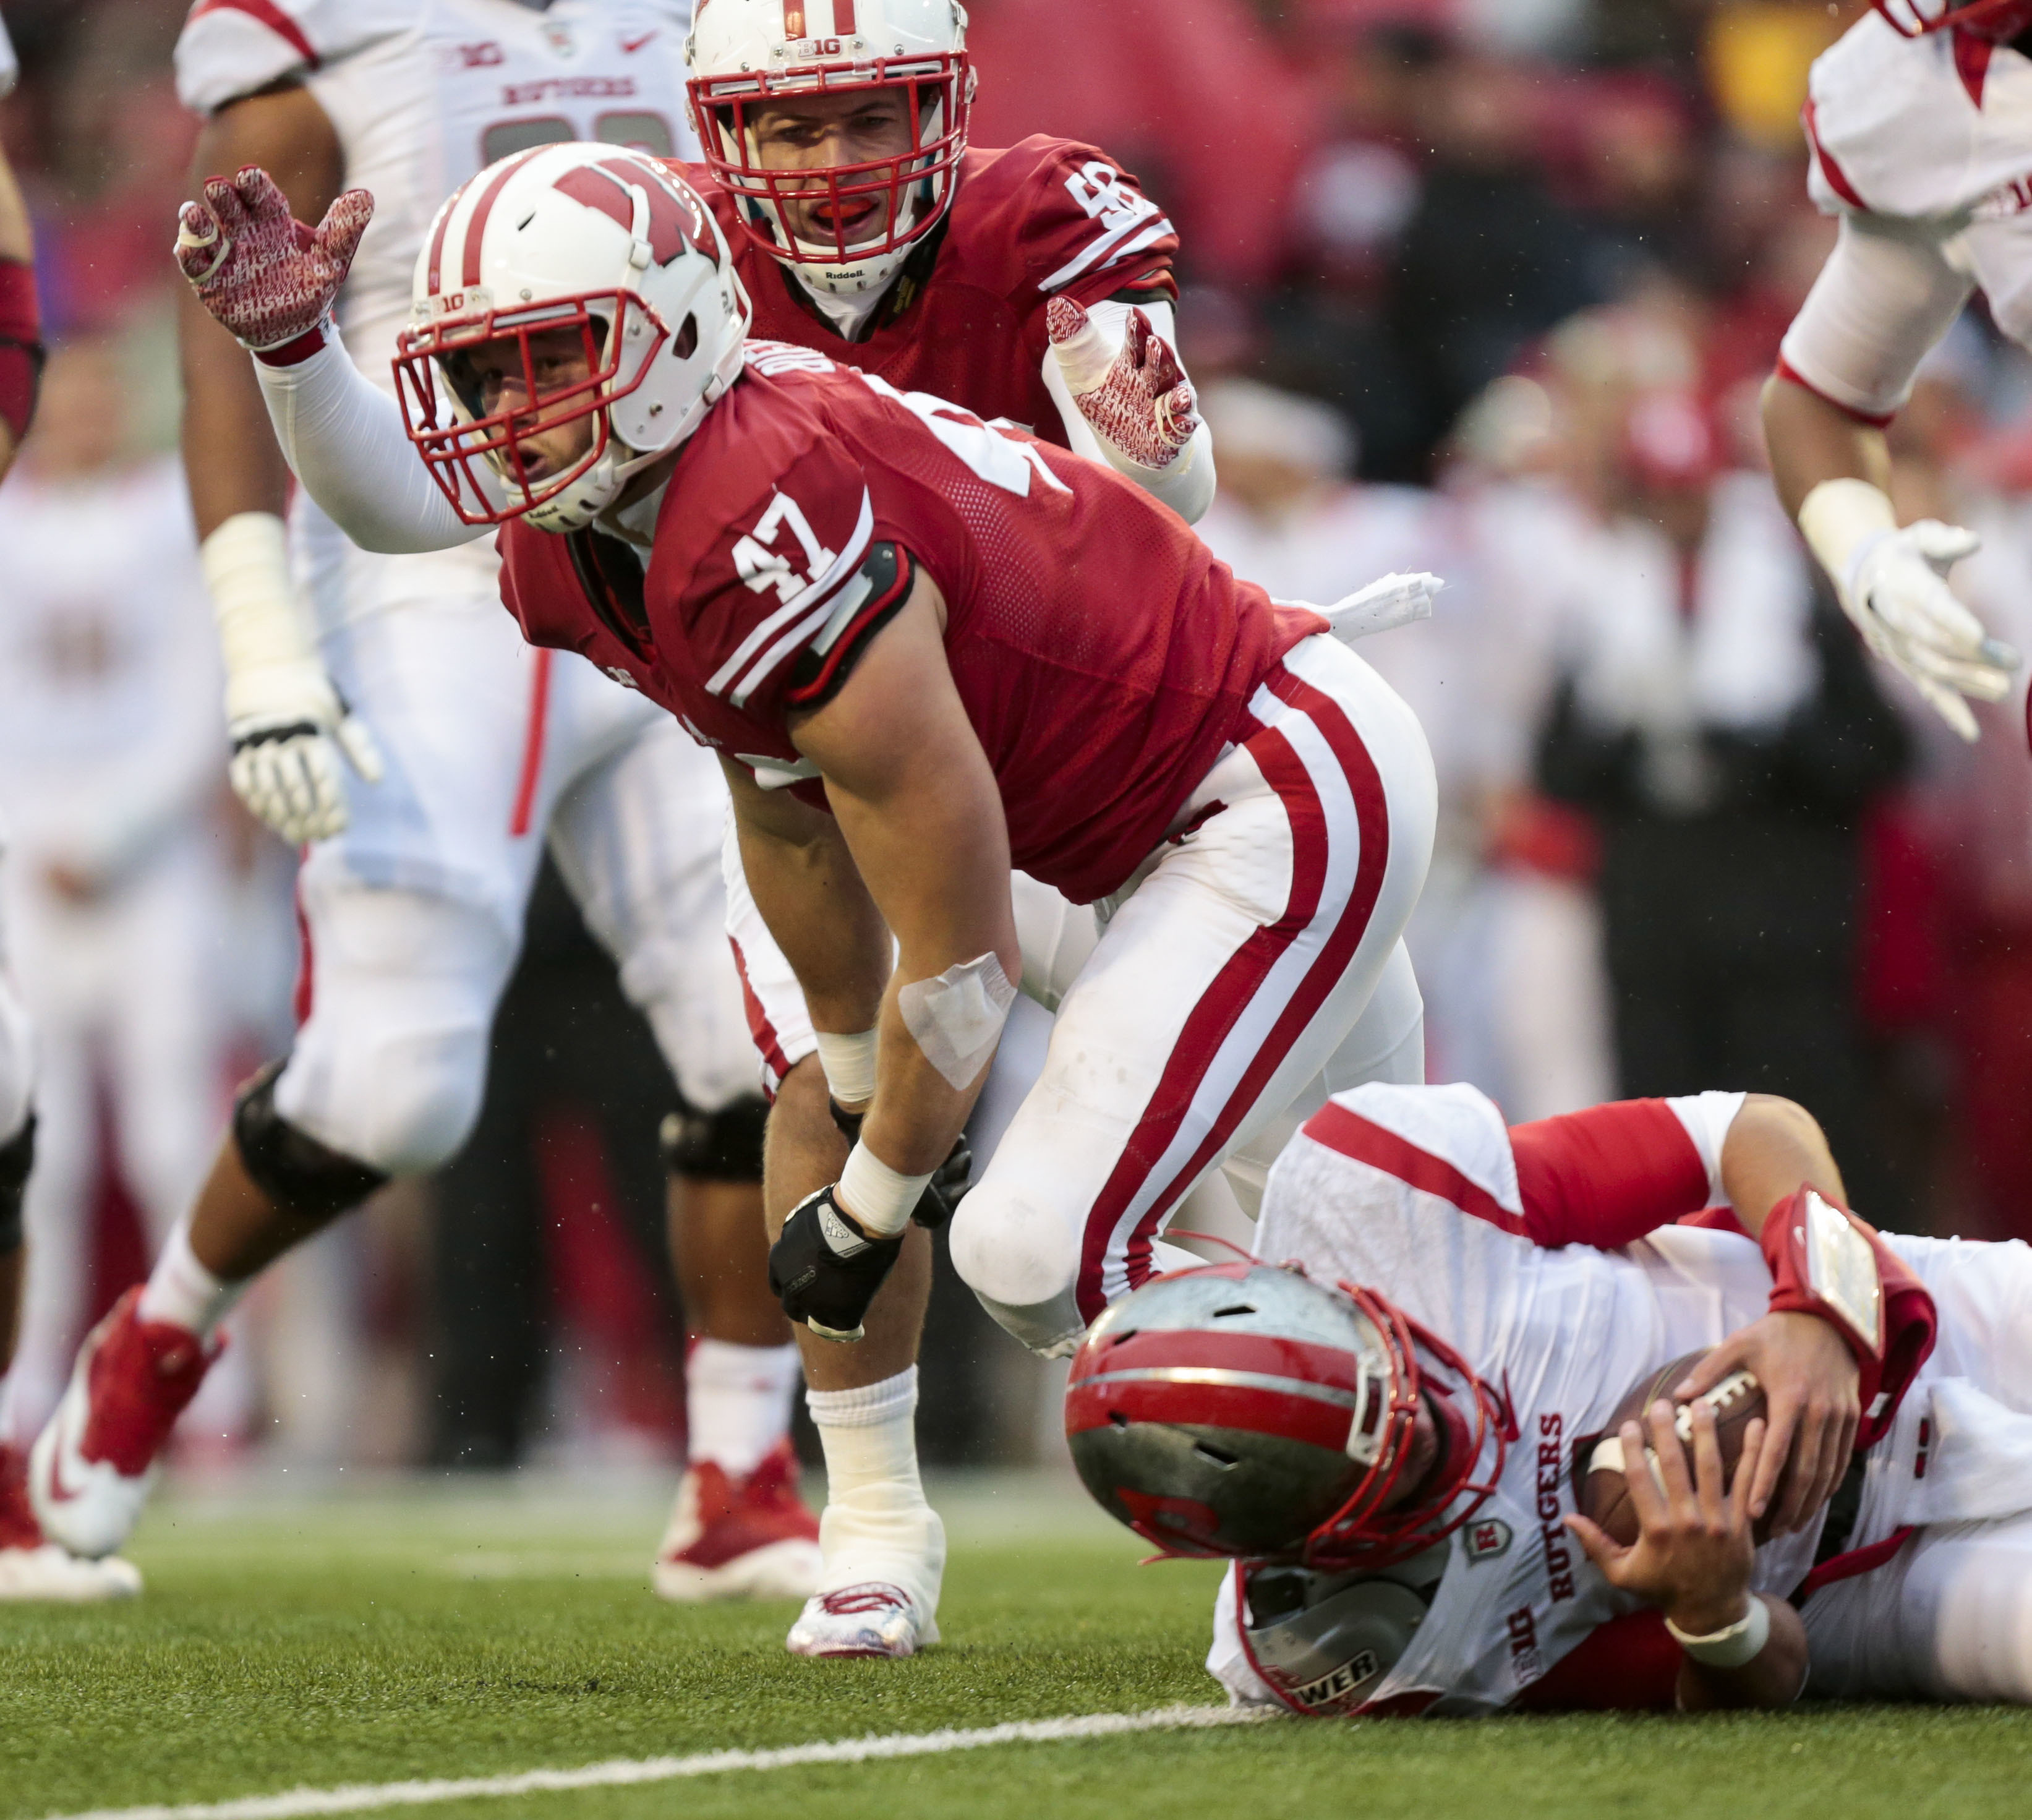 FILE - In this Oct. 31, 2015, file photo, Wisconsin linebacker Vince Biegel (47) and Joe Schobert celebrate after Biegel sacked Rutgers quarterback Chris Laviano during an NCAA college football game in Madison, Wis. Biegel was one of the best linebackers